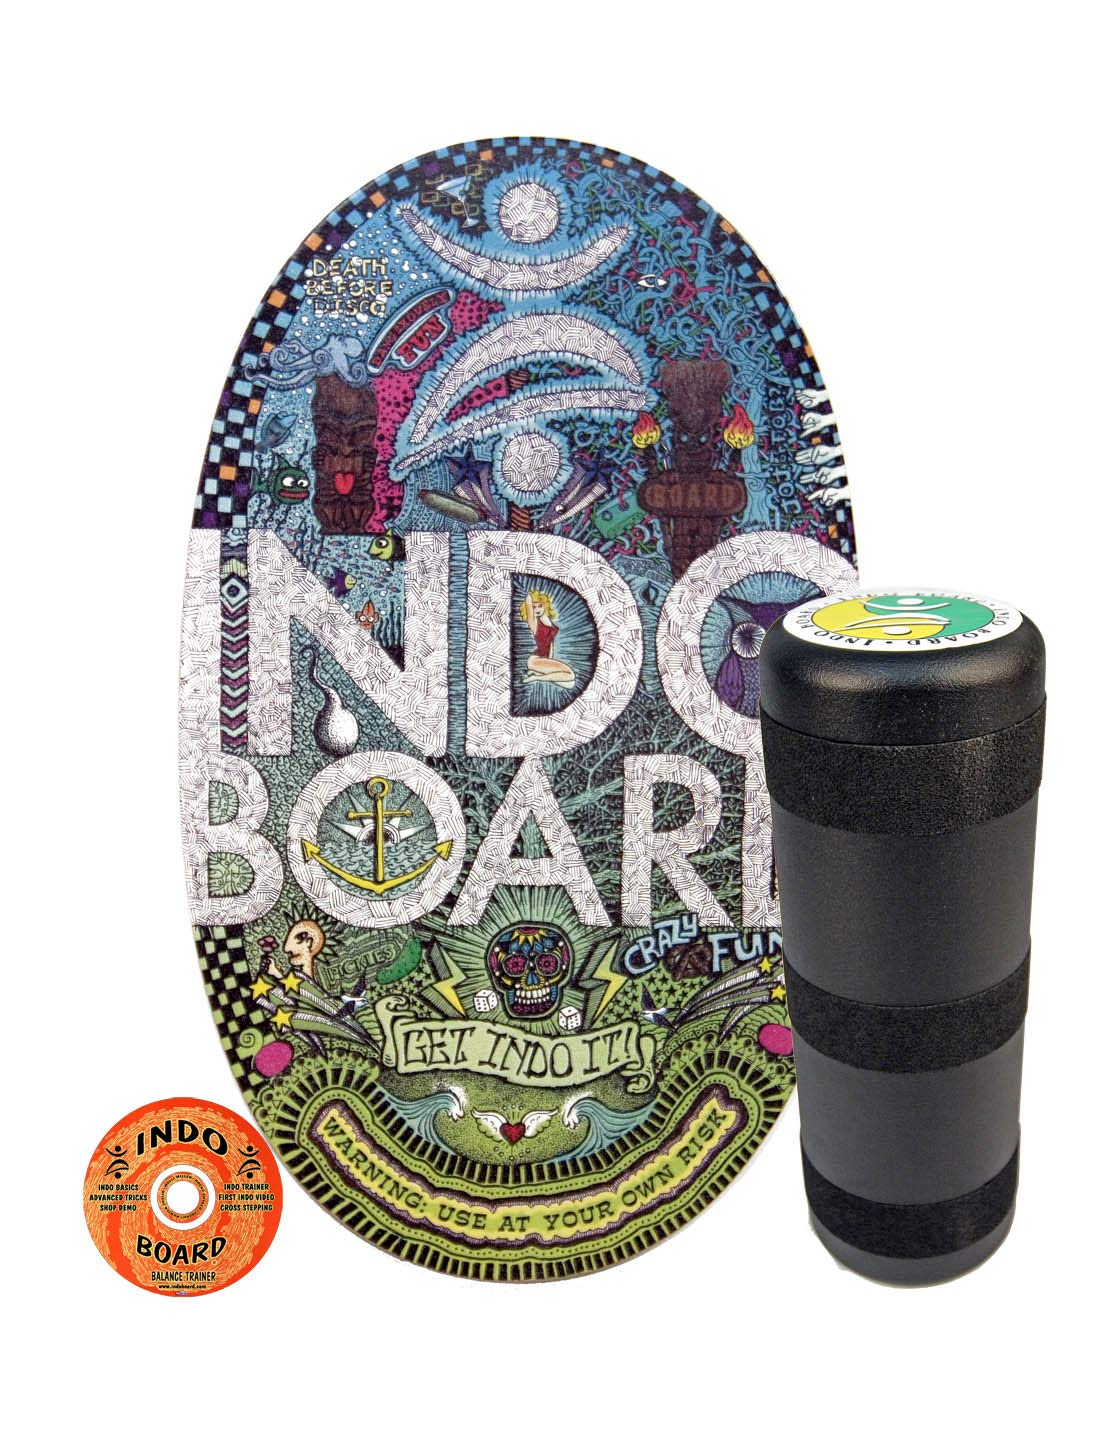 INDO BOARD Original Balance Board with 6.5'' Roller and 30'' X 18'' Non-Slip Deck - Doodle Design by INDO BOARD (Image #1)